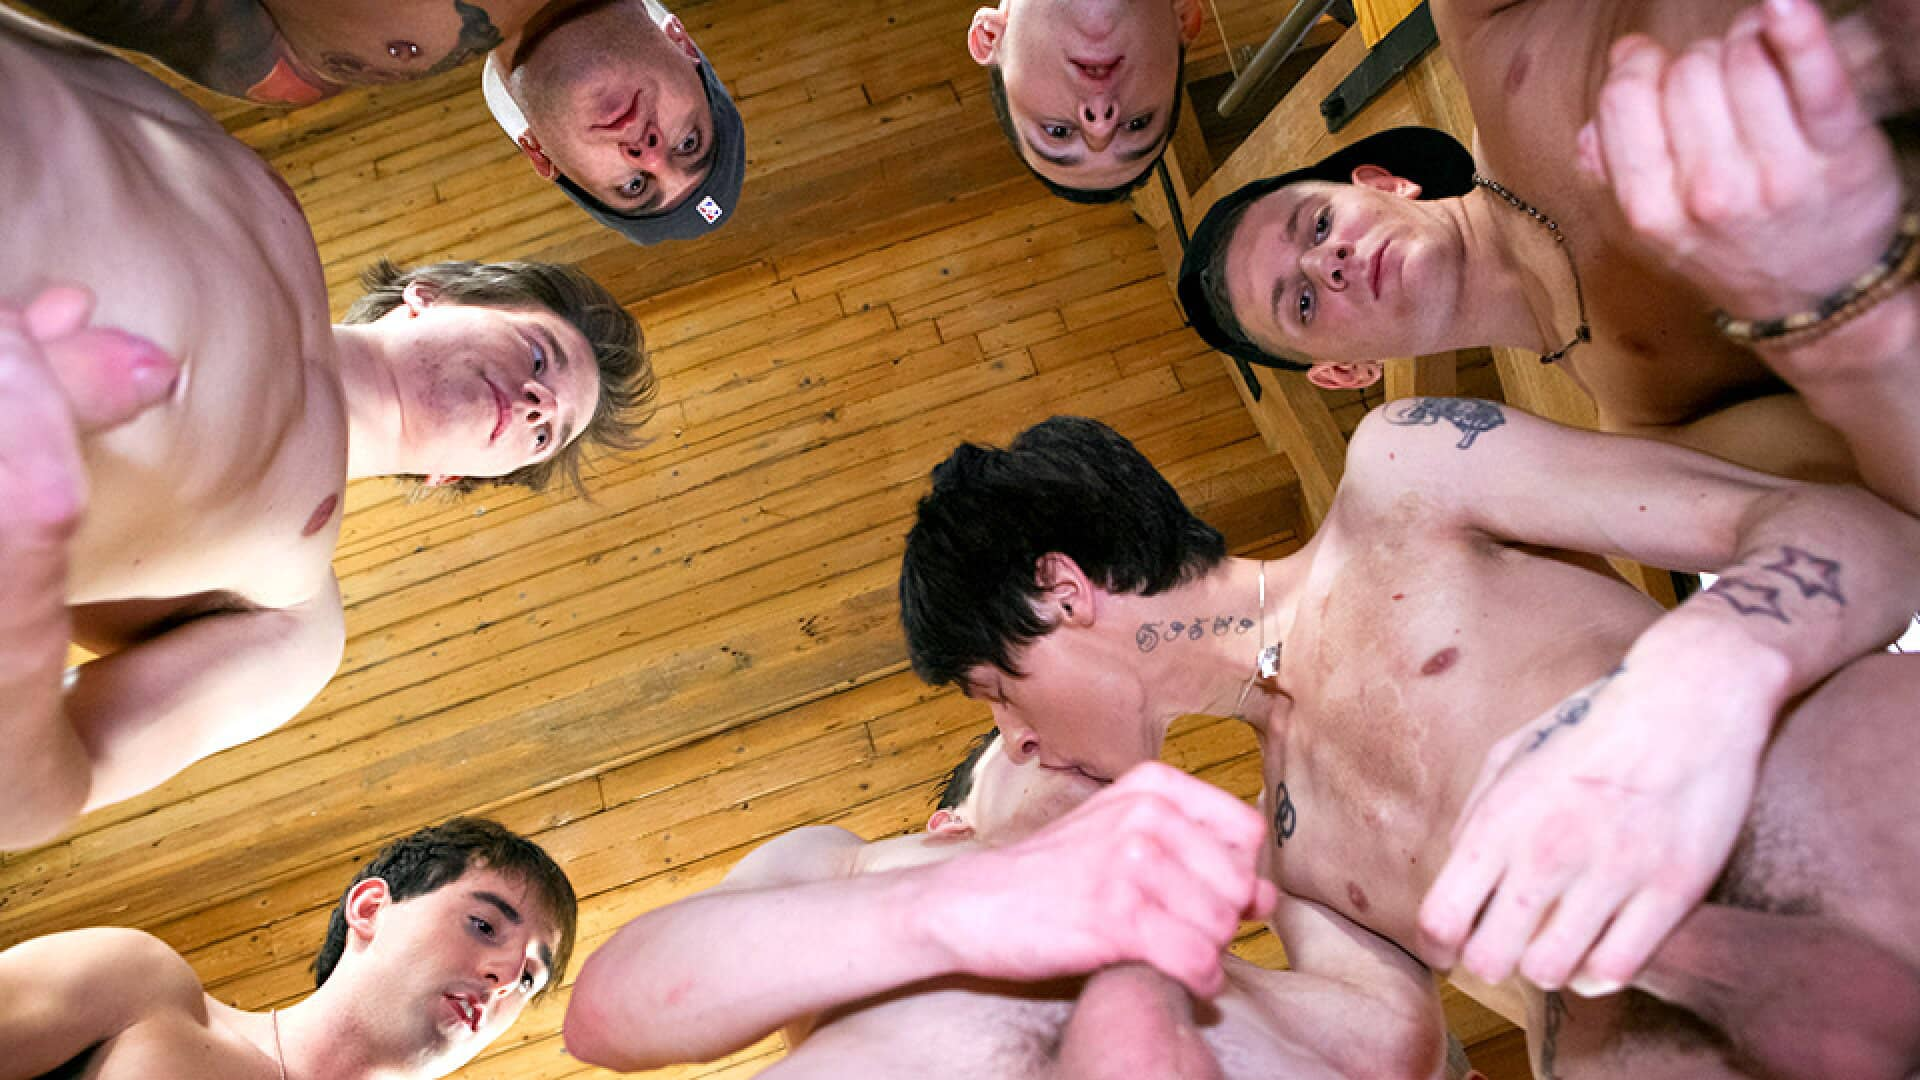 Party Time For Cock-Crazed Boys, Part 3